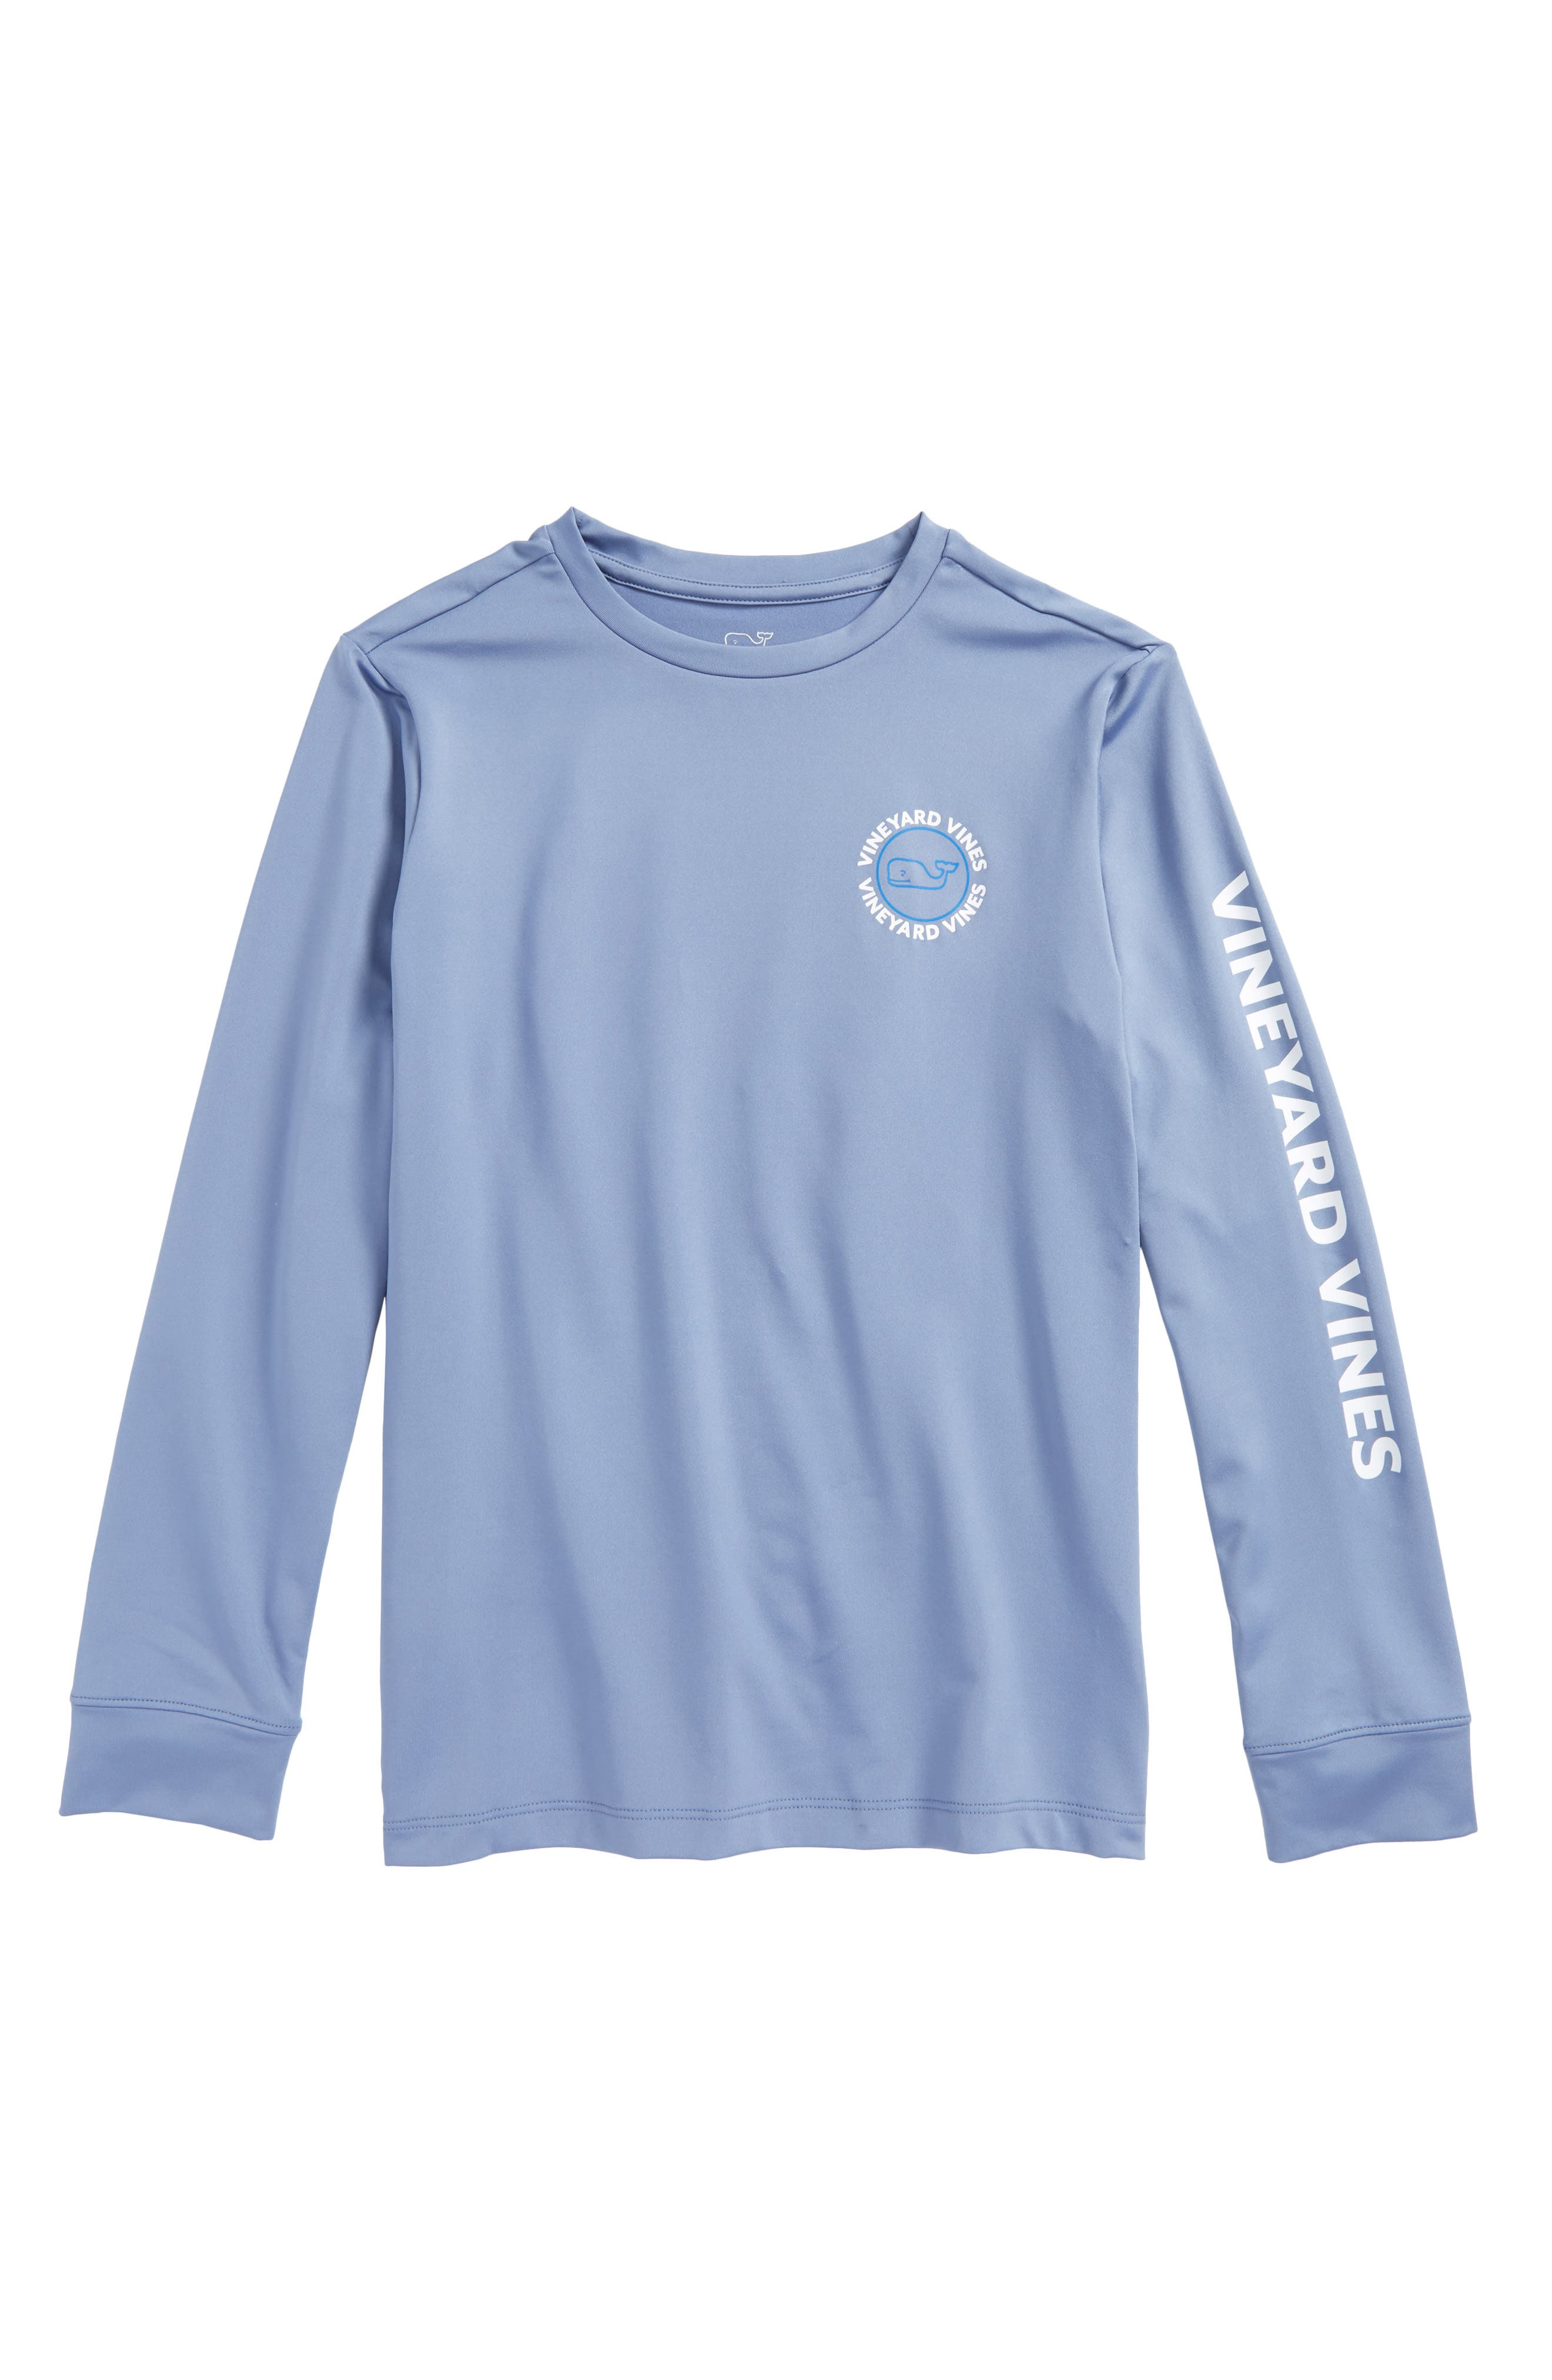 Whale Dot Performance T-Shirt,                             Main thumbnail 1, color,                             400